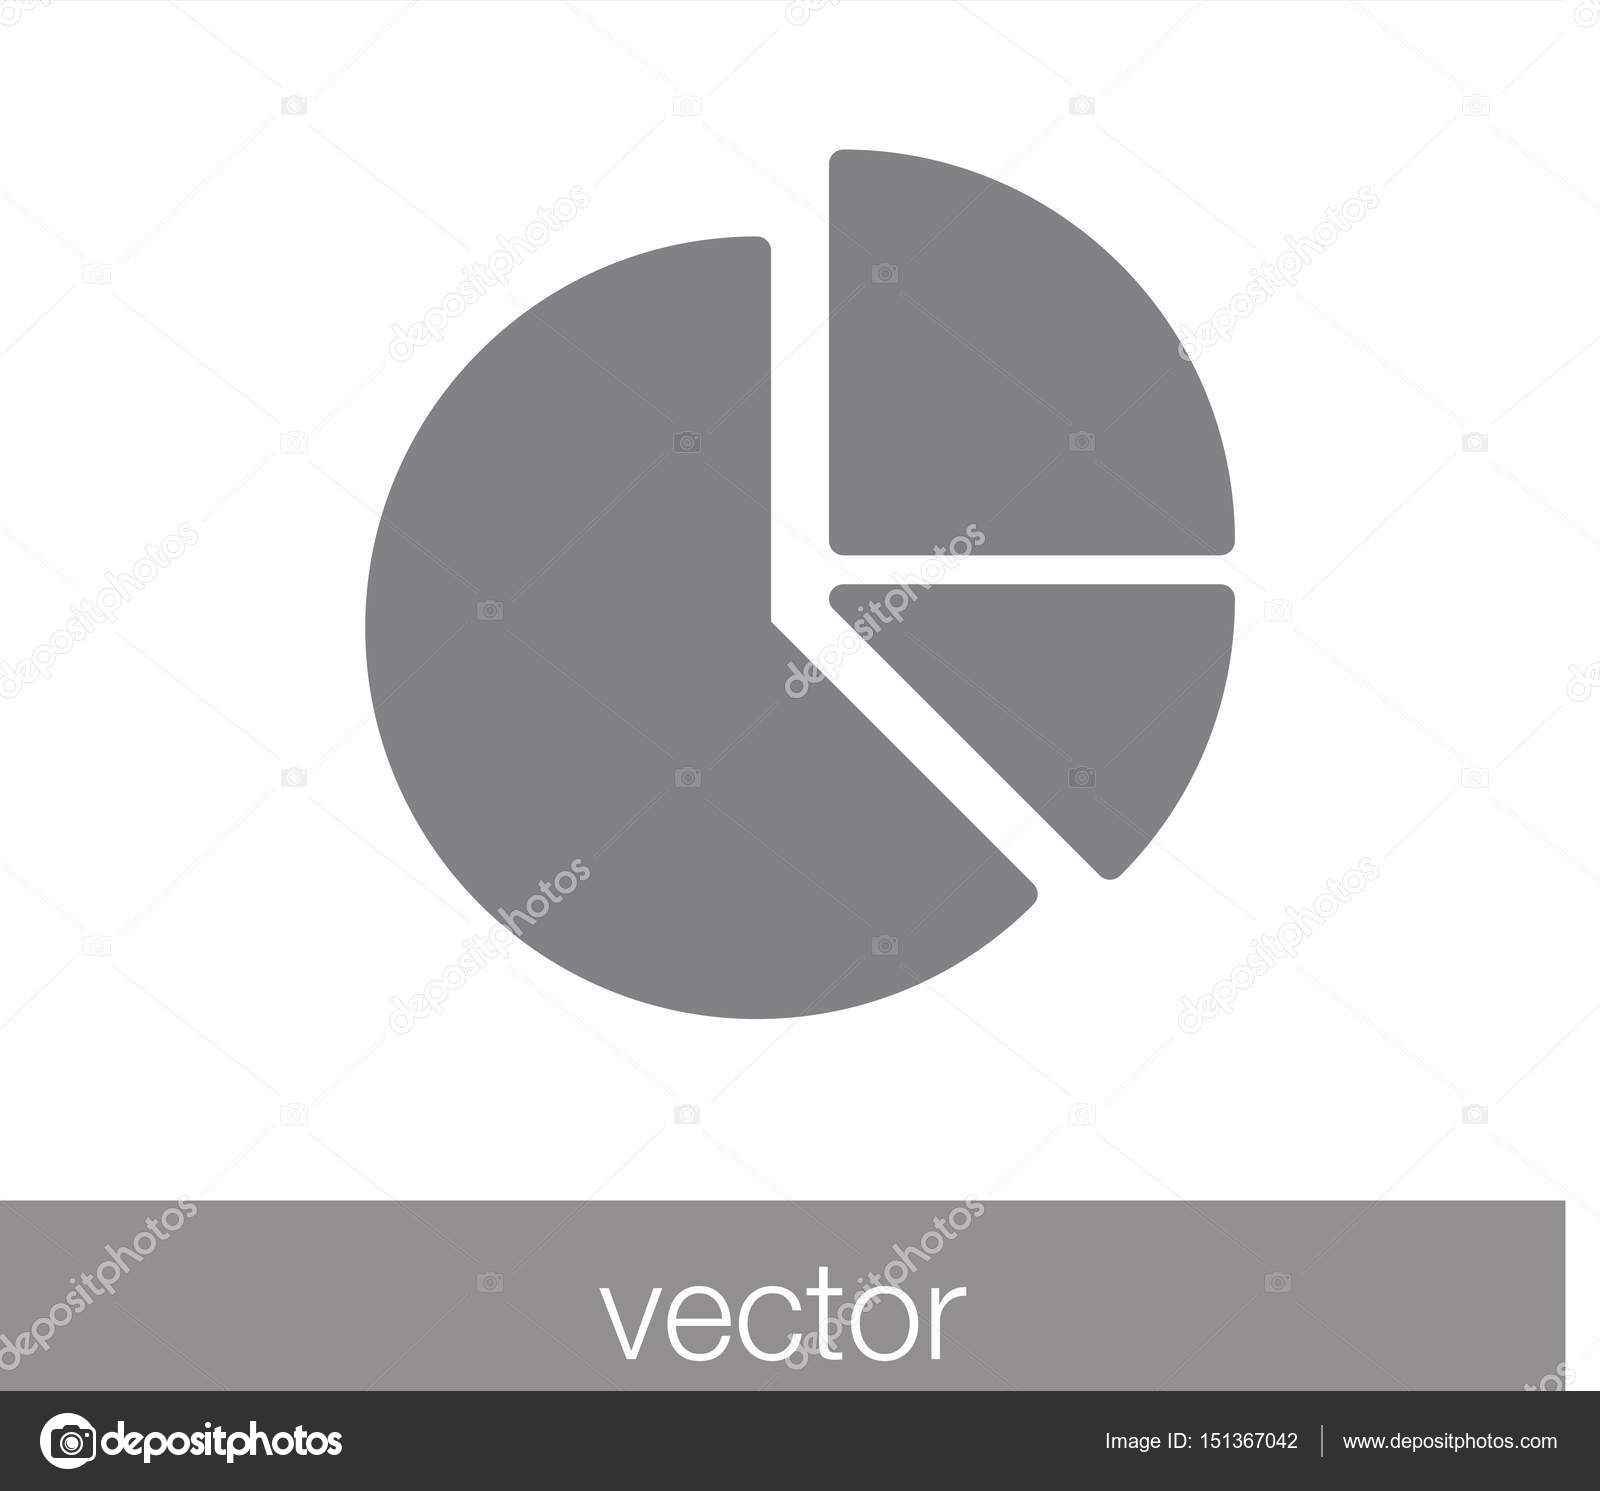 Pie chart icon statistic symbol icon stock vector vector illustration of pie chart icon statistic symbol icon vector by signsandsymbolsemail geenschuldenfo Images